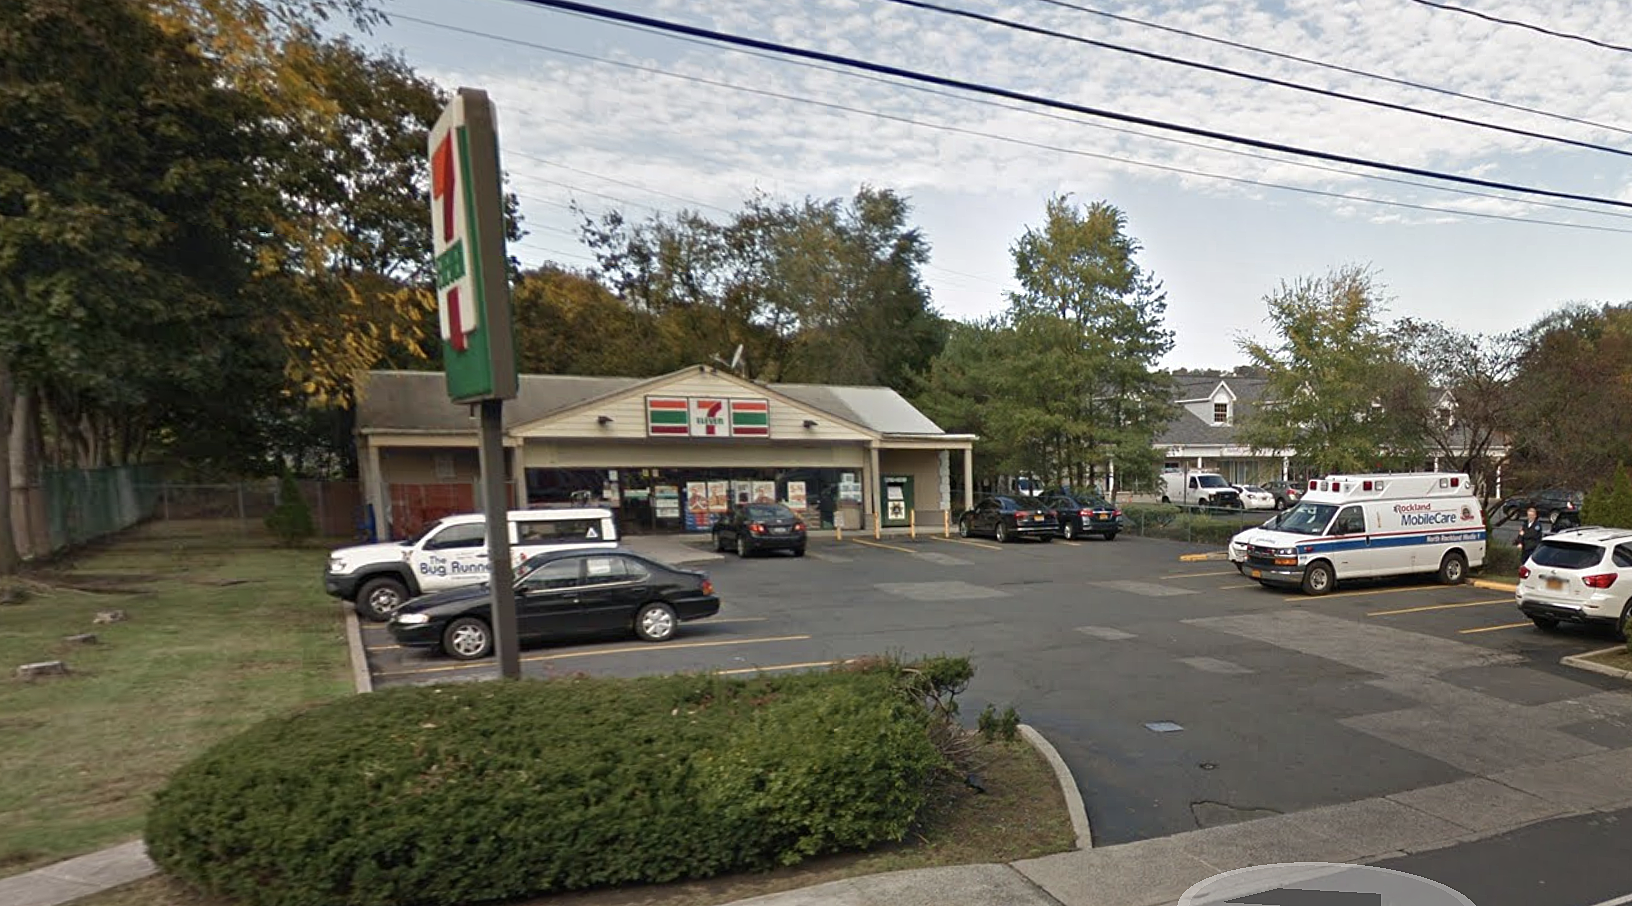 Man Intentionally Hits Family With Vehicle at HV 7-Eleven